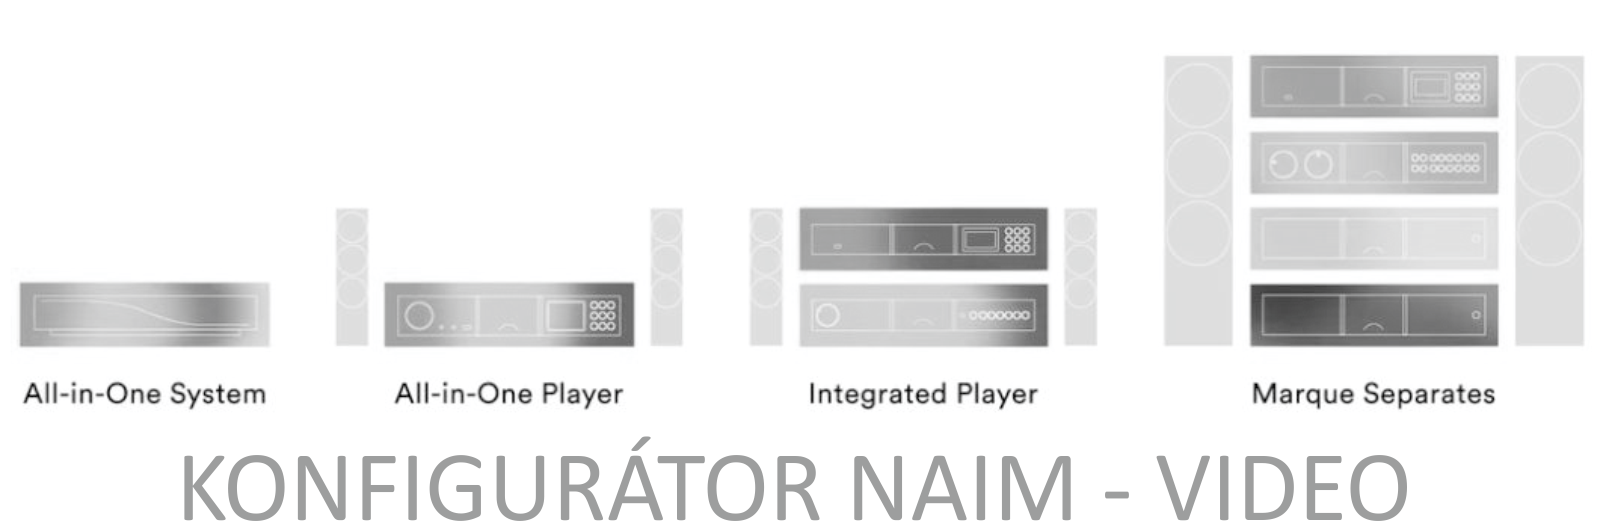 How to configurate and build Naim Audio system